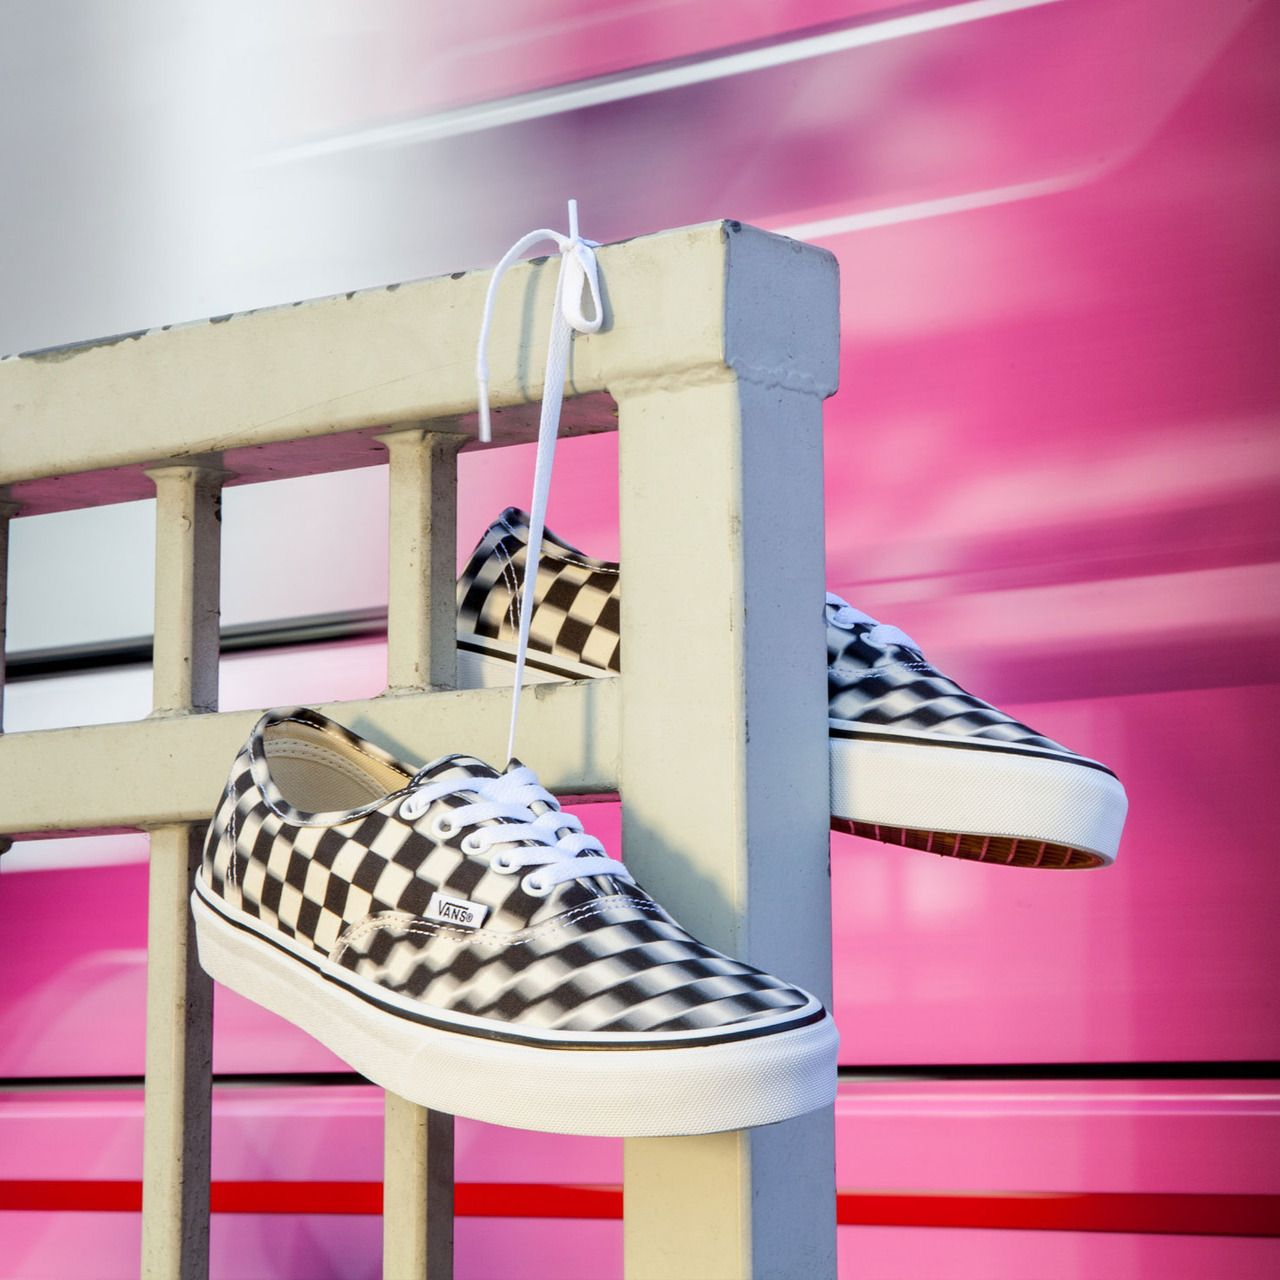 0a5fc15706 A new spin on Checkerboard that s bound to cause doubletakes. Shop the Blur  Check Pack at vans.com classics or your nearest store.